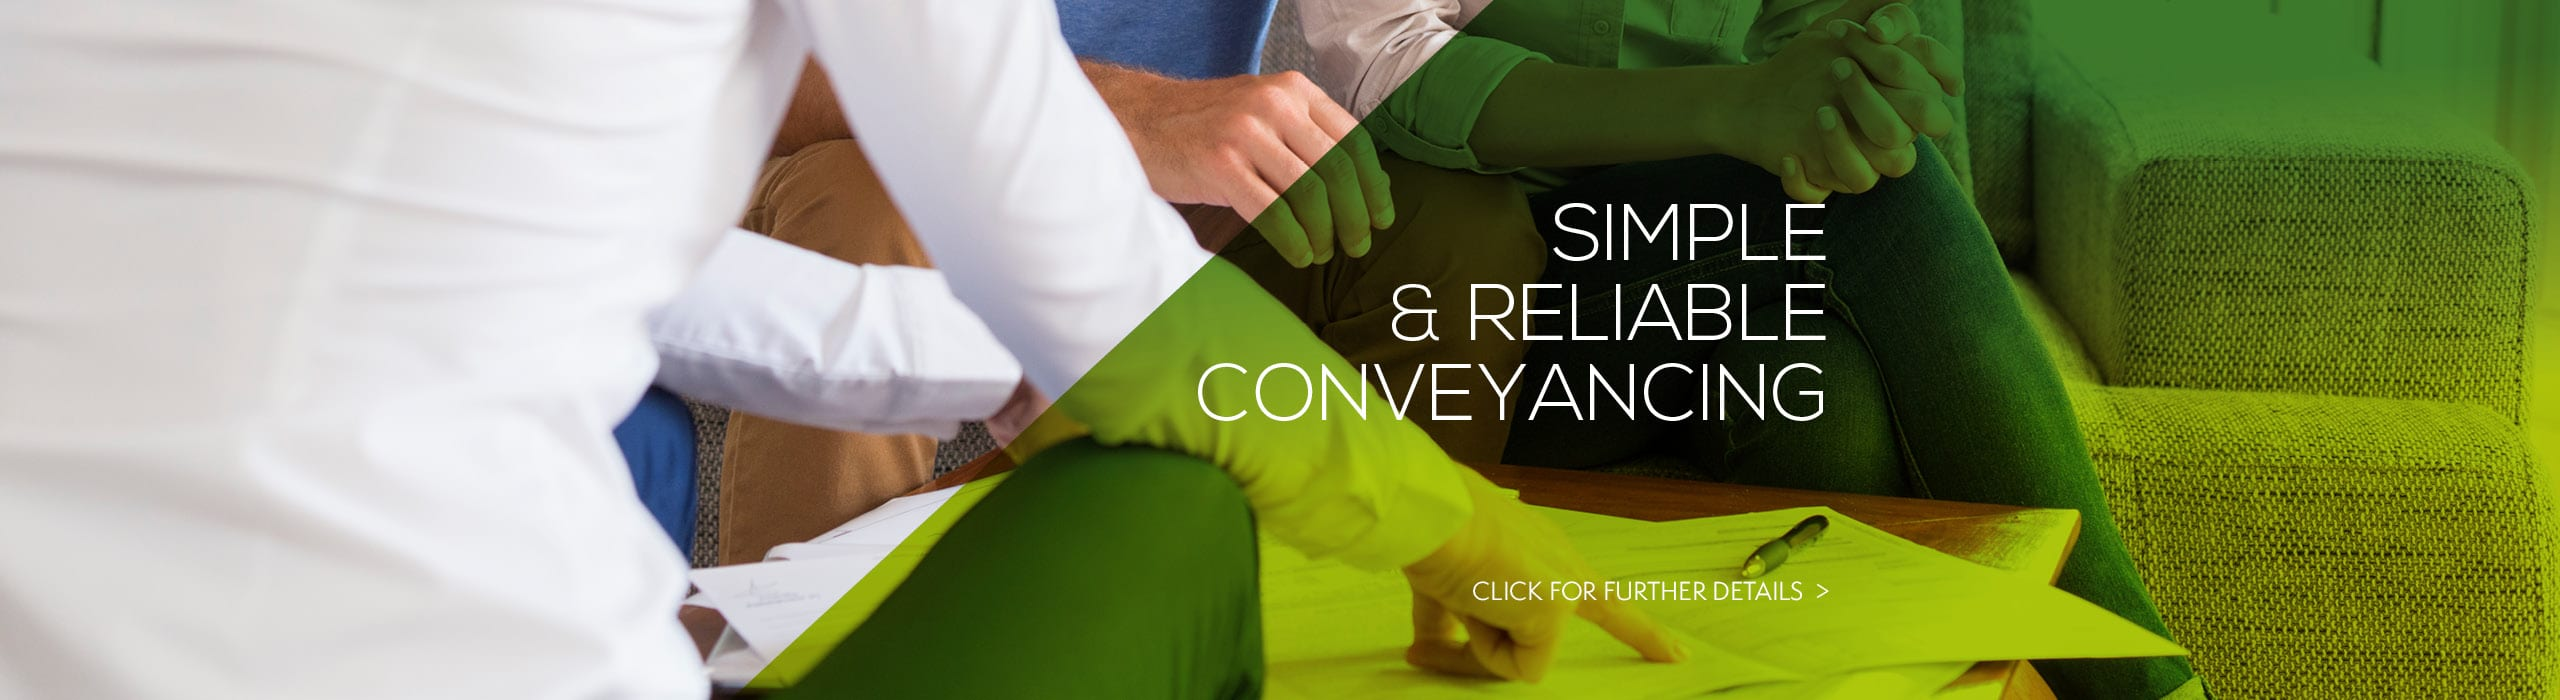 conveyancing banner